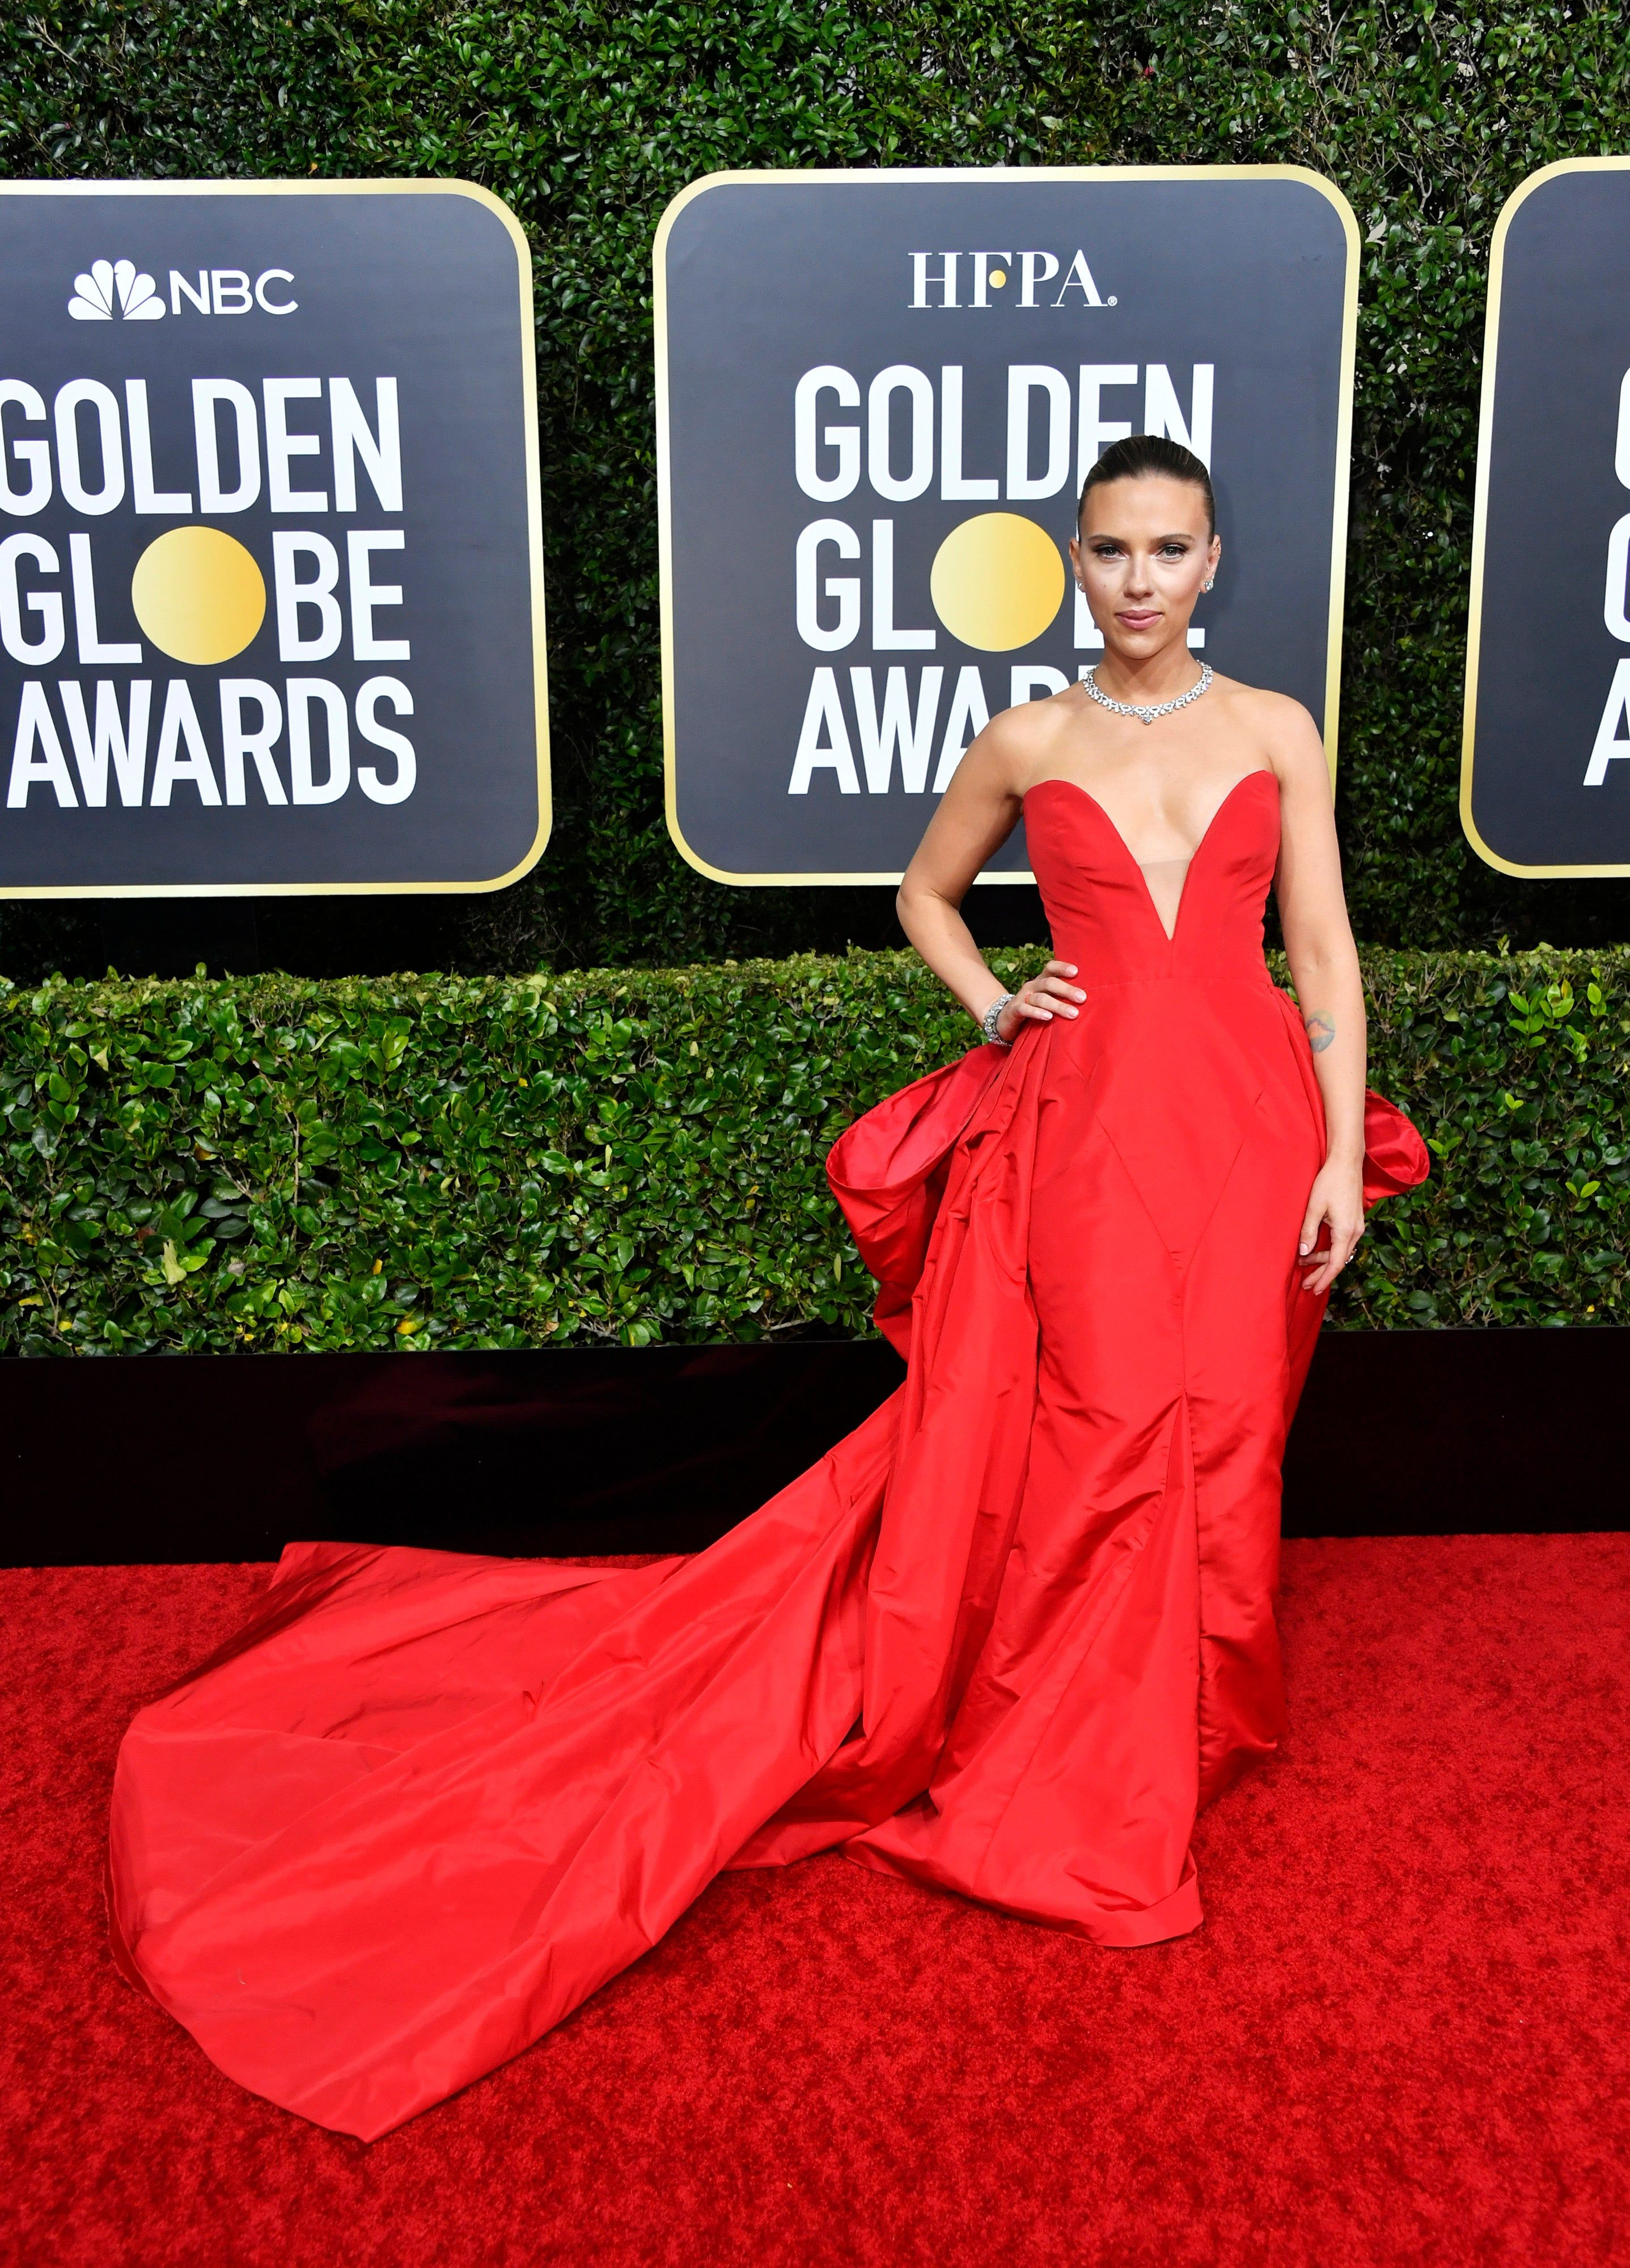 The Golden Globes Red Carpet Is One Fashion Moment After Another